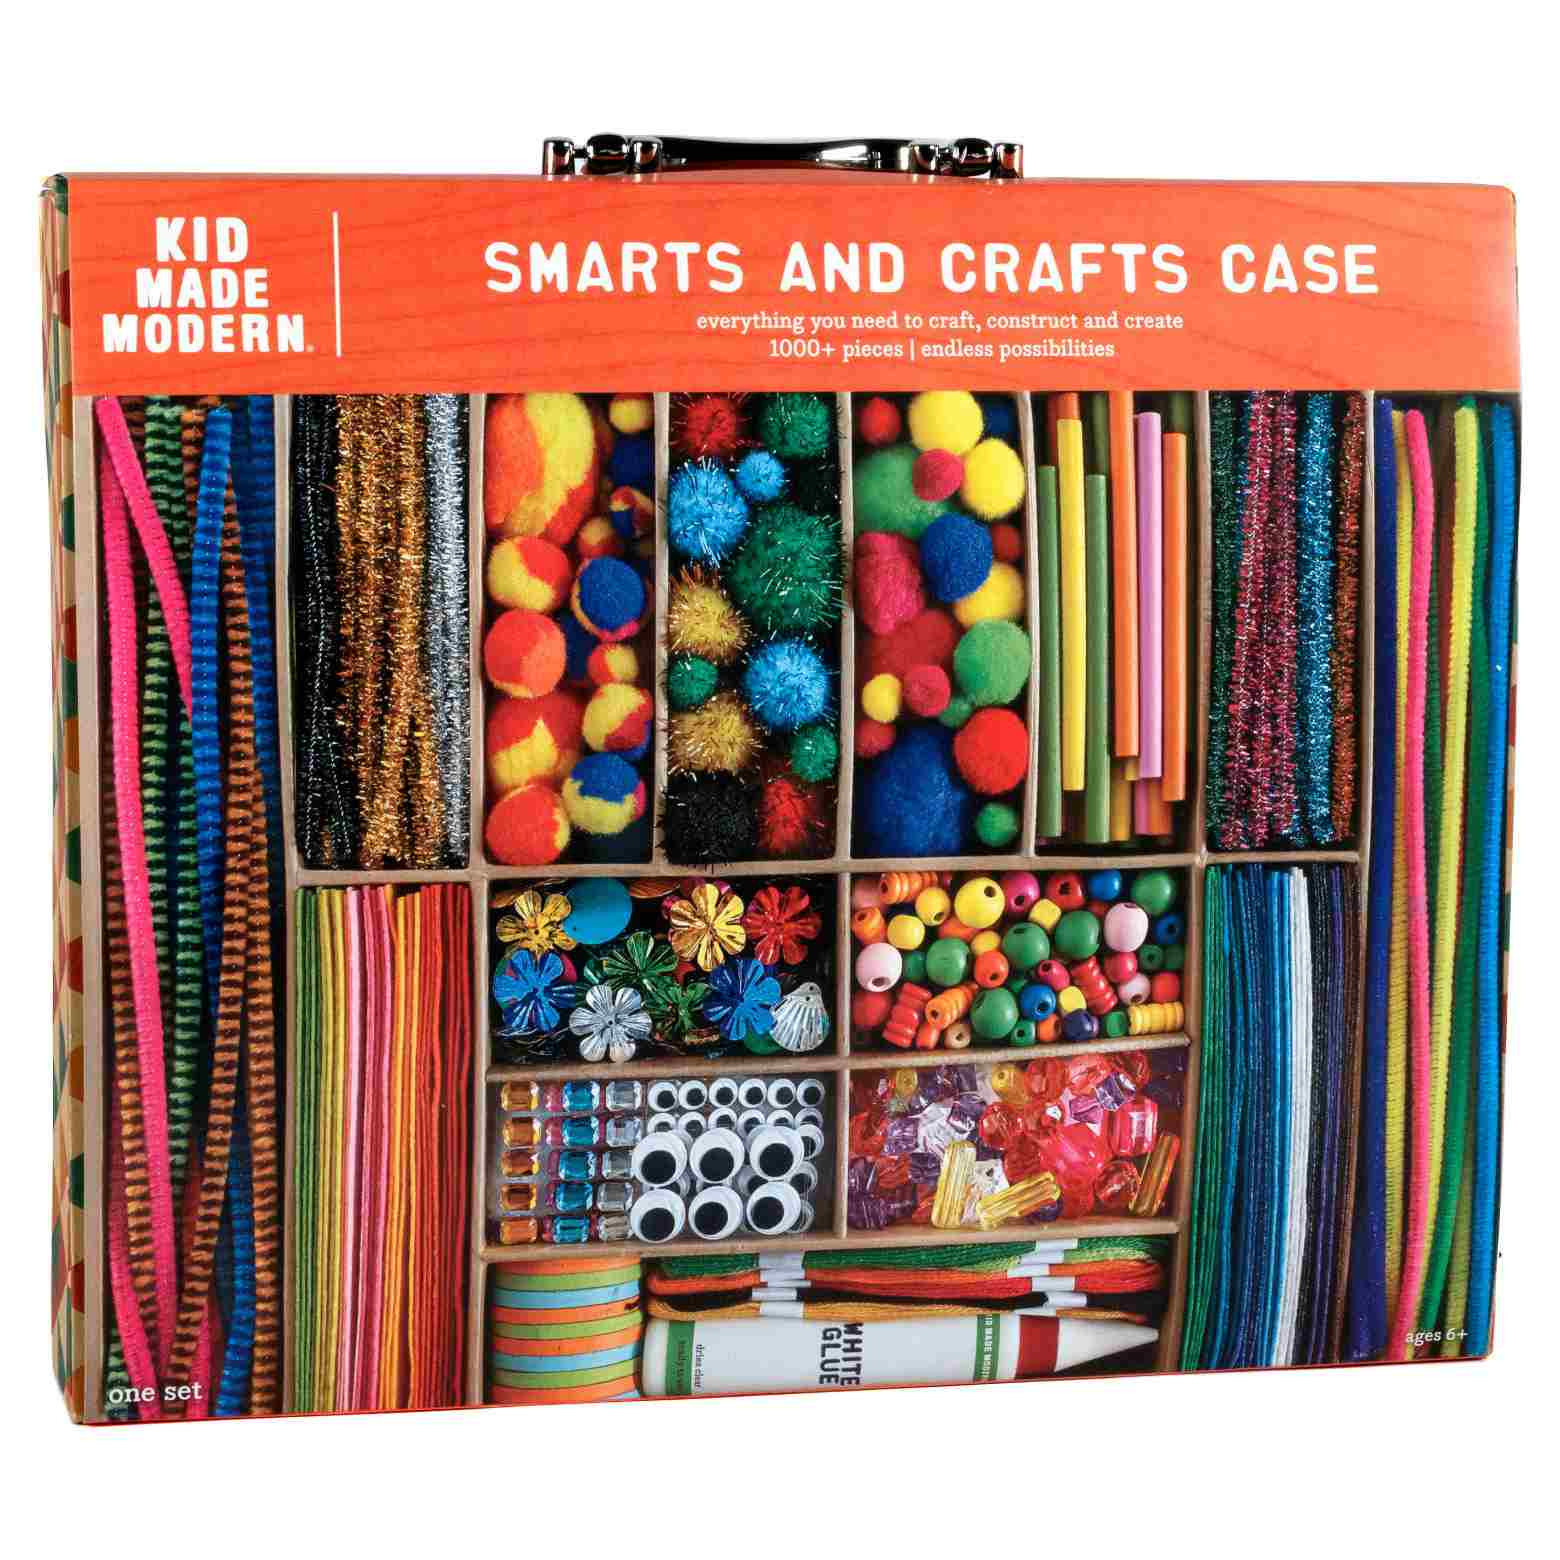 Crafts Kits For Kids  The 9 Best Craft Kits for Kids in 2020